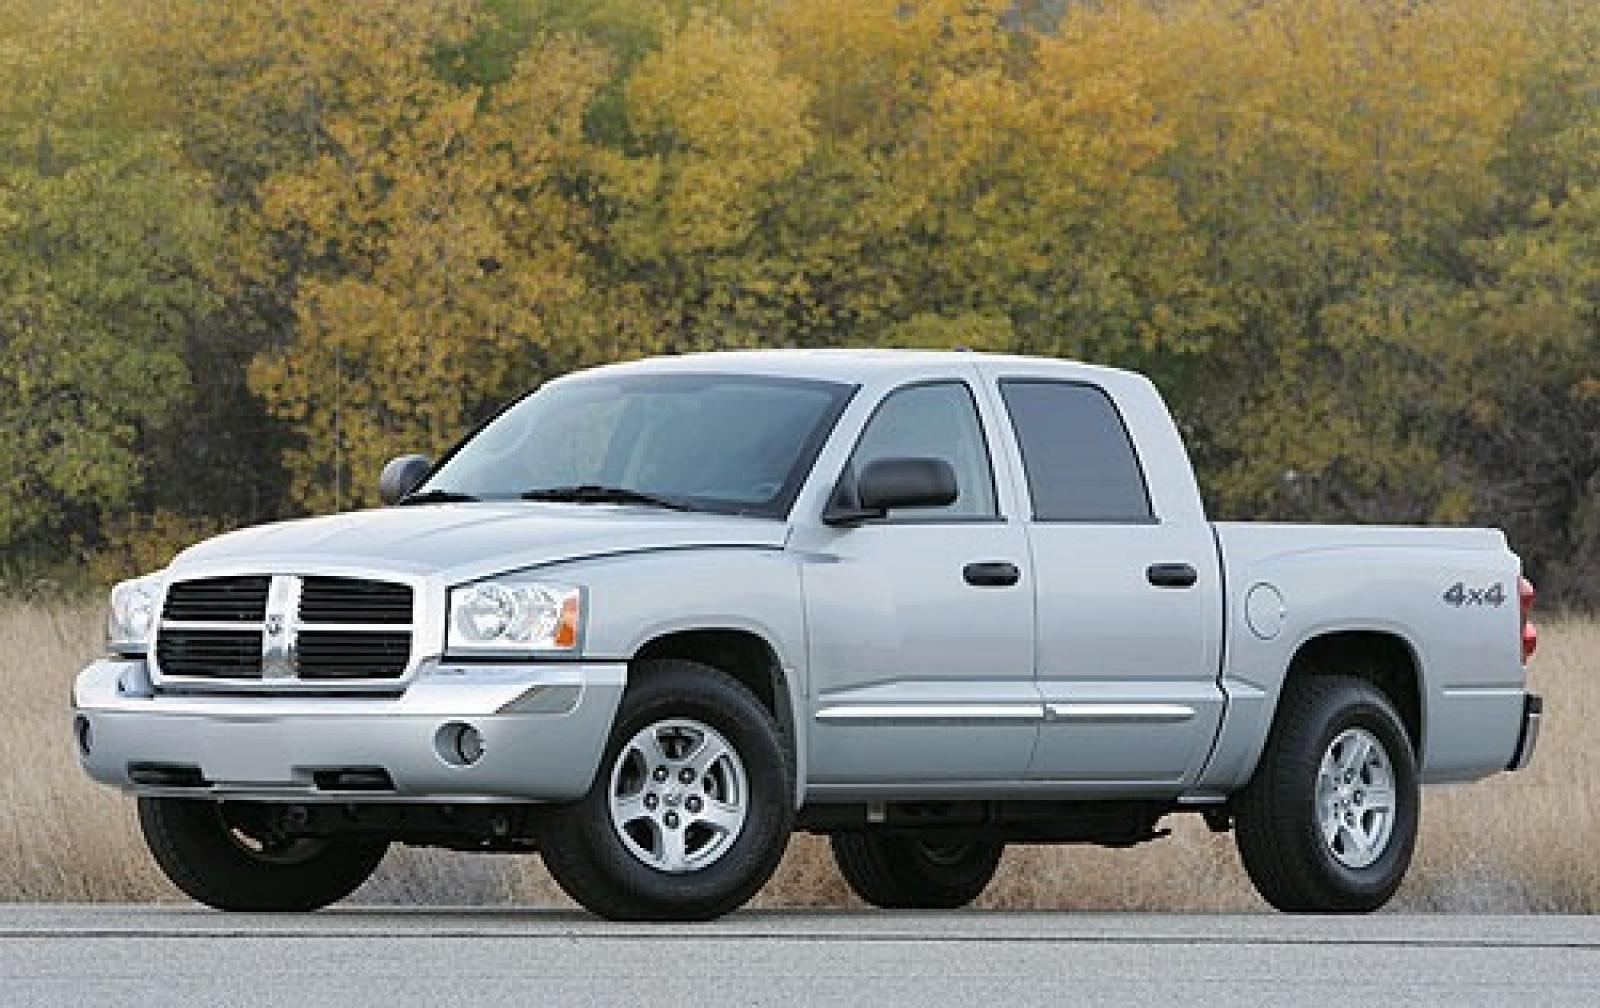 2005 dodge dakota information and photos zombiedrive. Black Bedroom Furniture Sets. Home Design Ideas